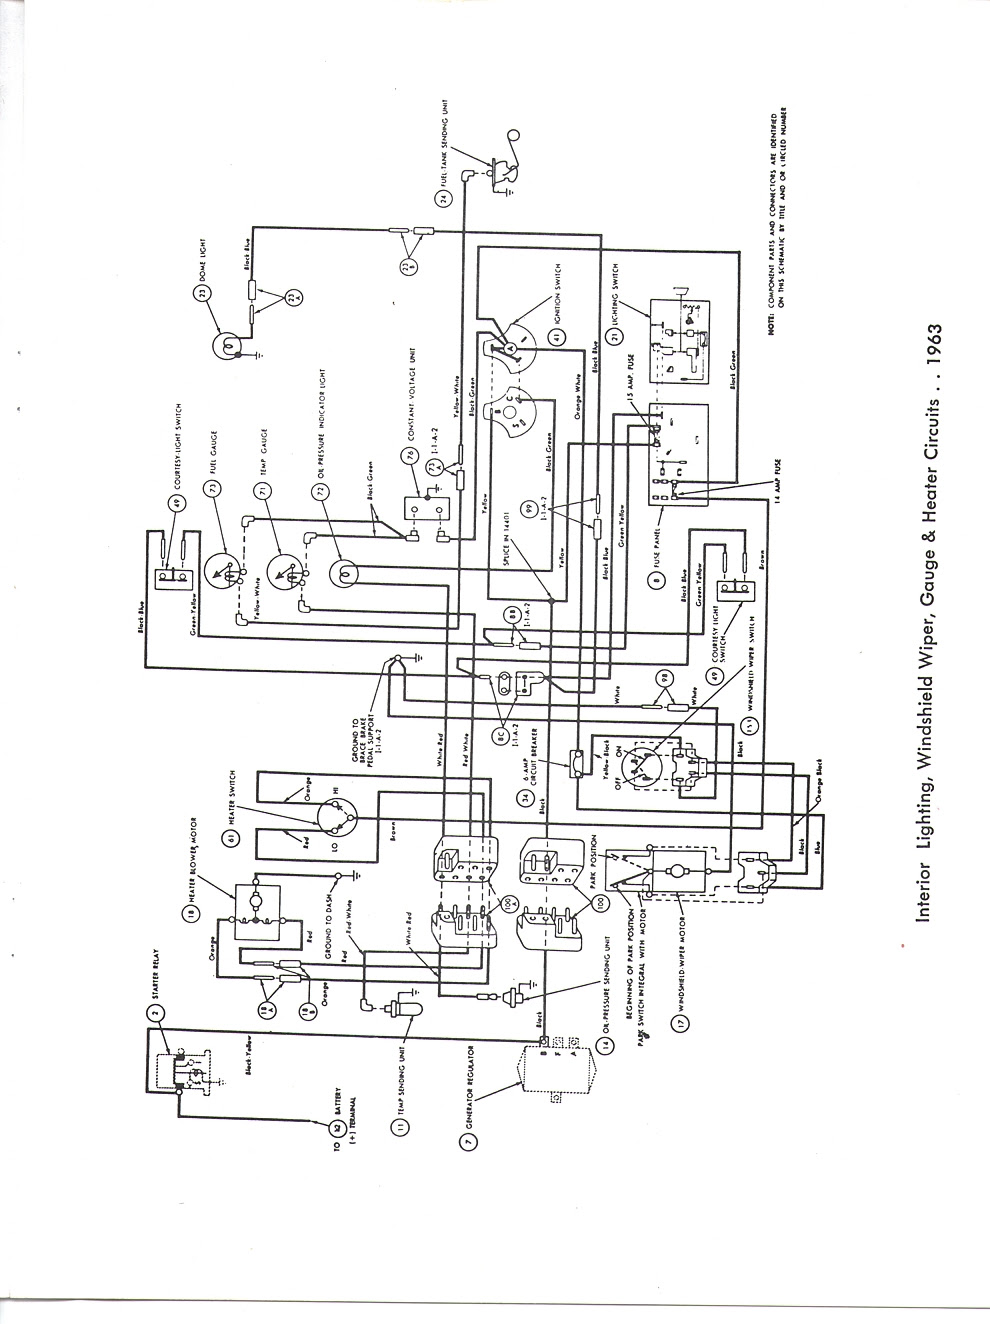 Jeep Wrangler Tj Radio Wiring Diagram - Wiring Diagram Schemas